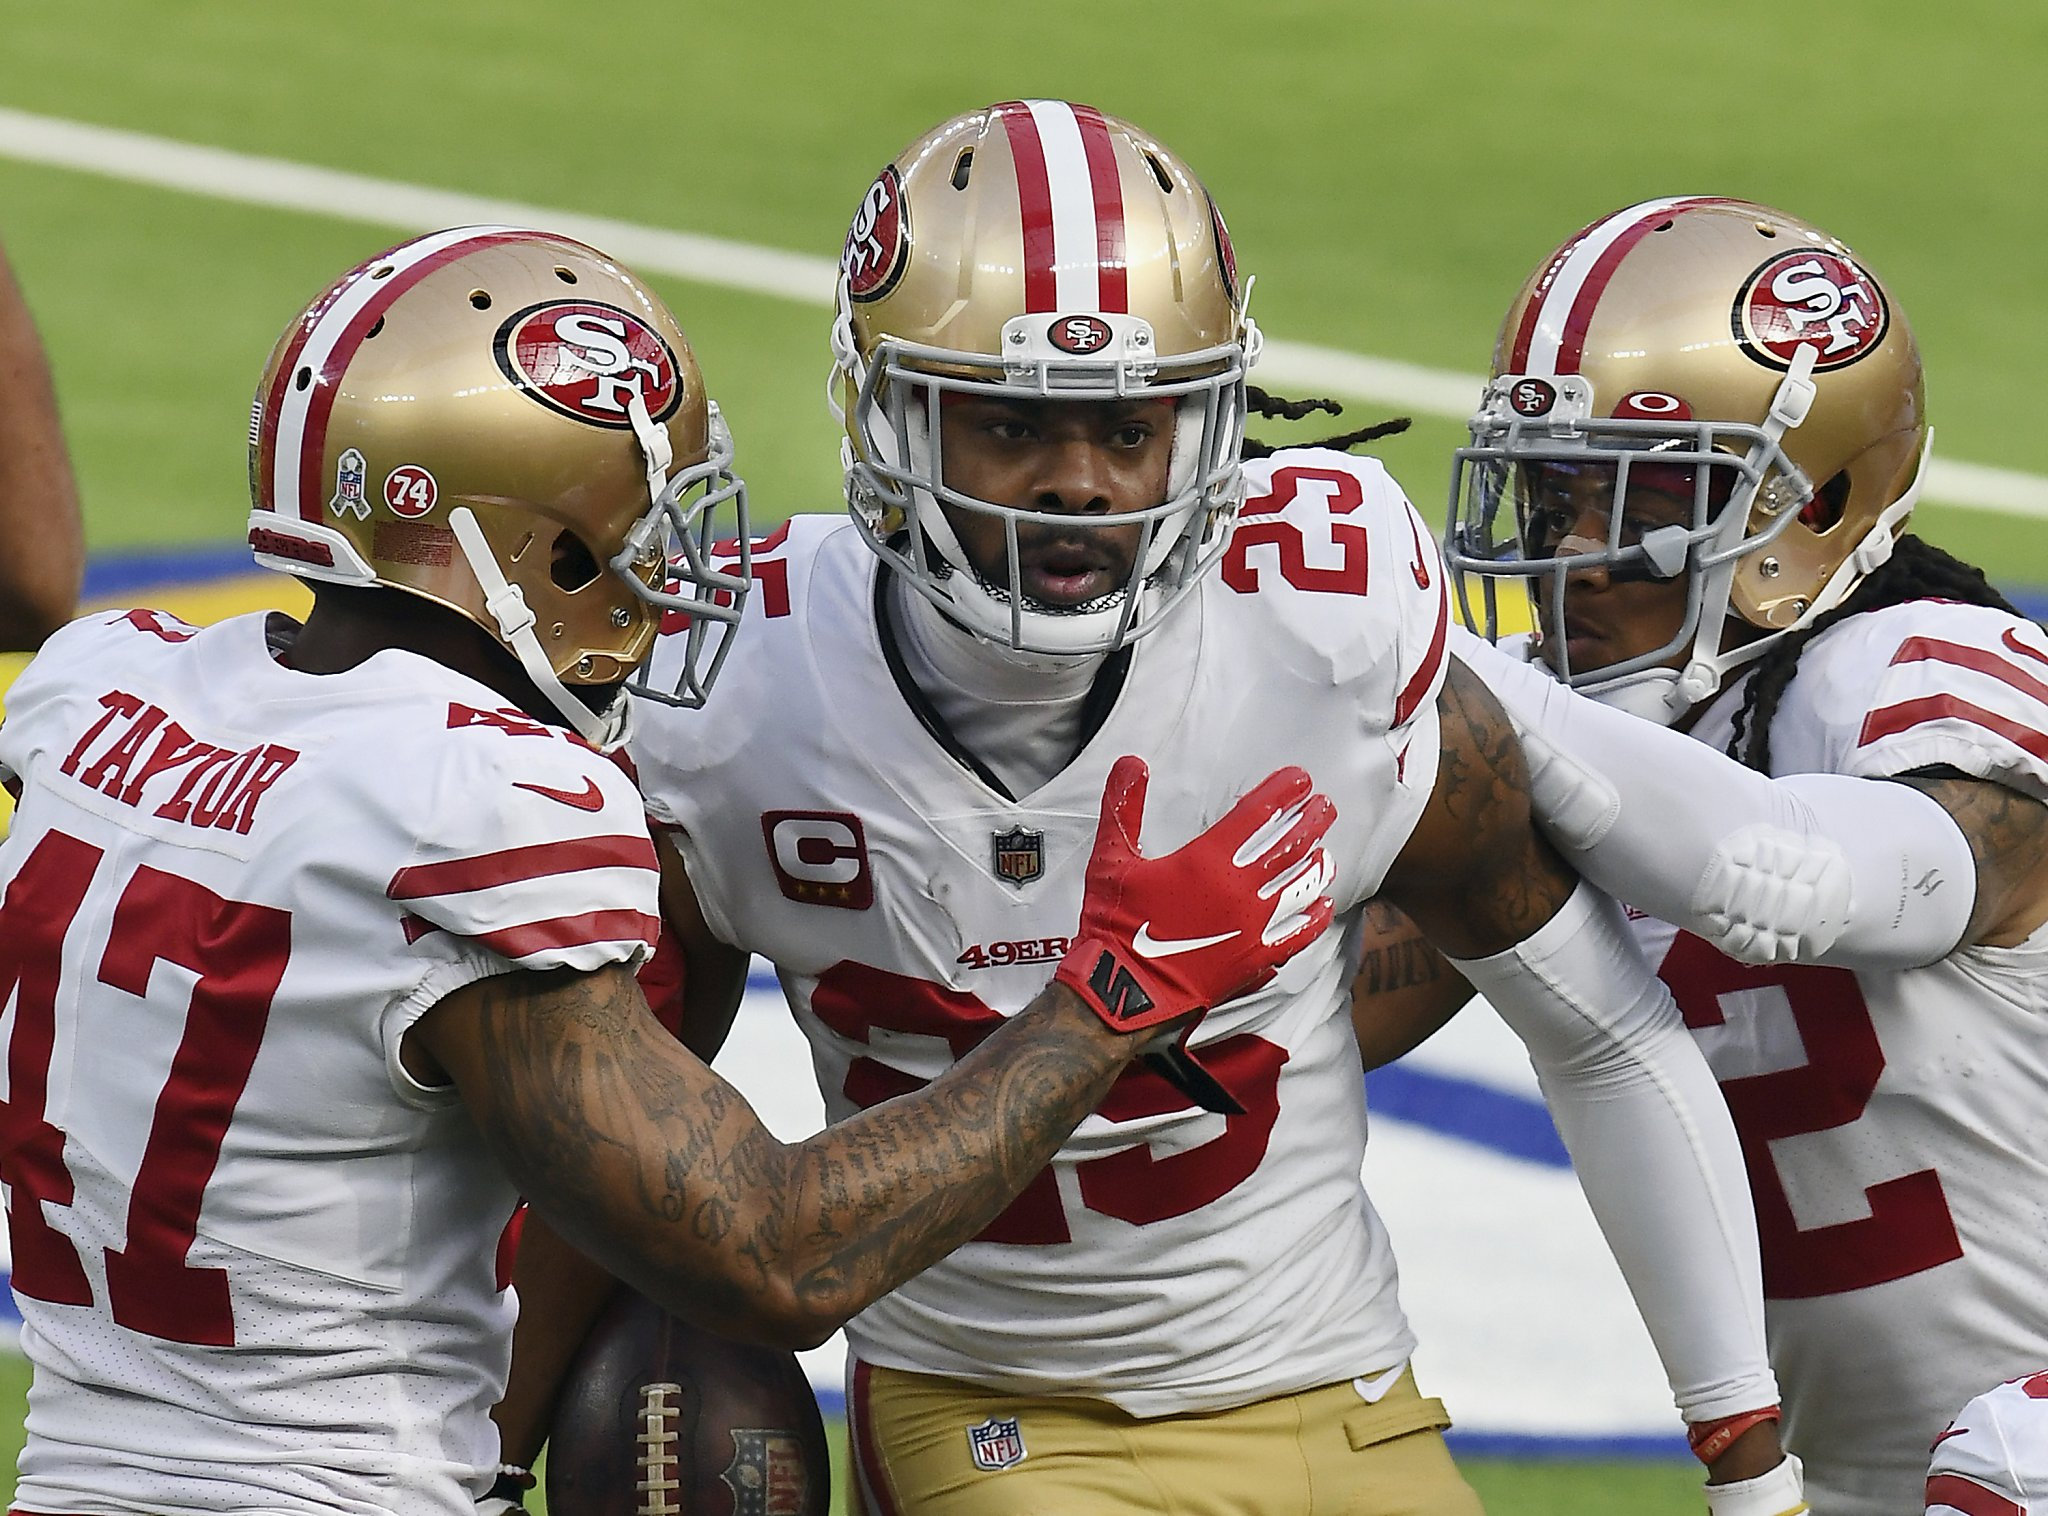 After long absence, 49ers' Richard Sherman says he's overcome his calf issues